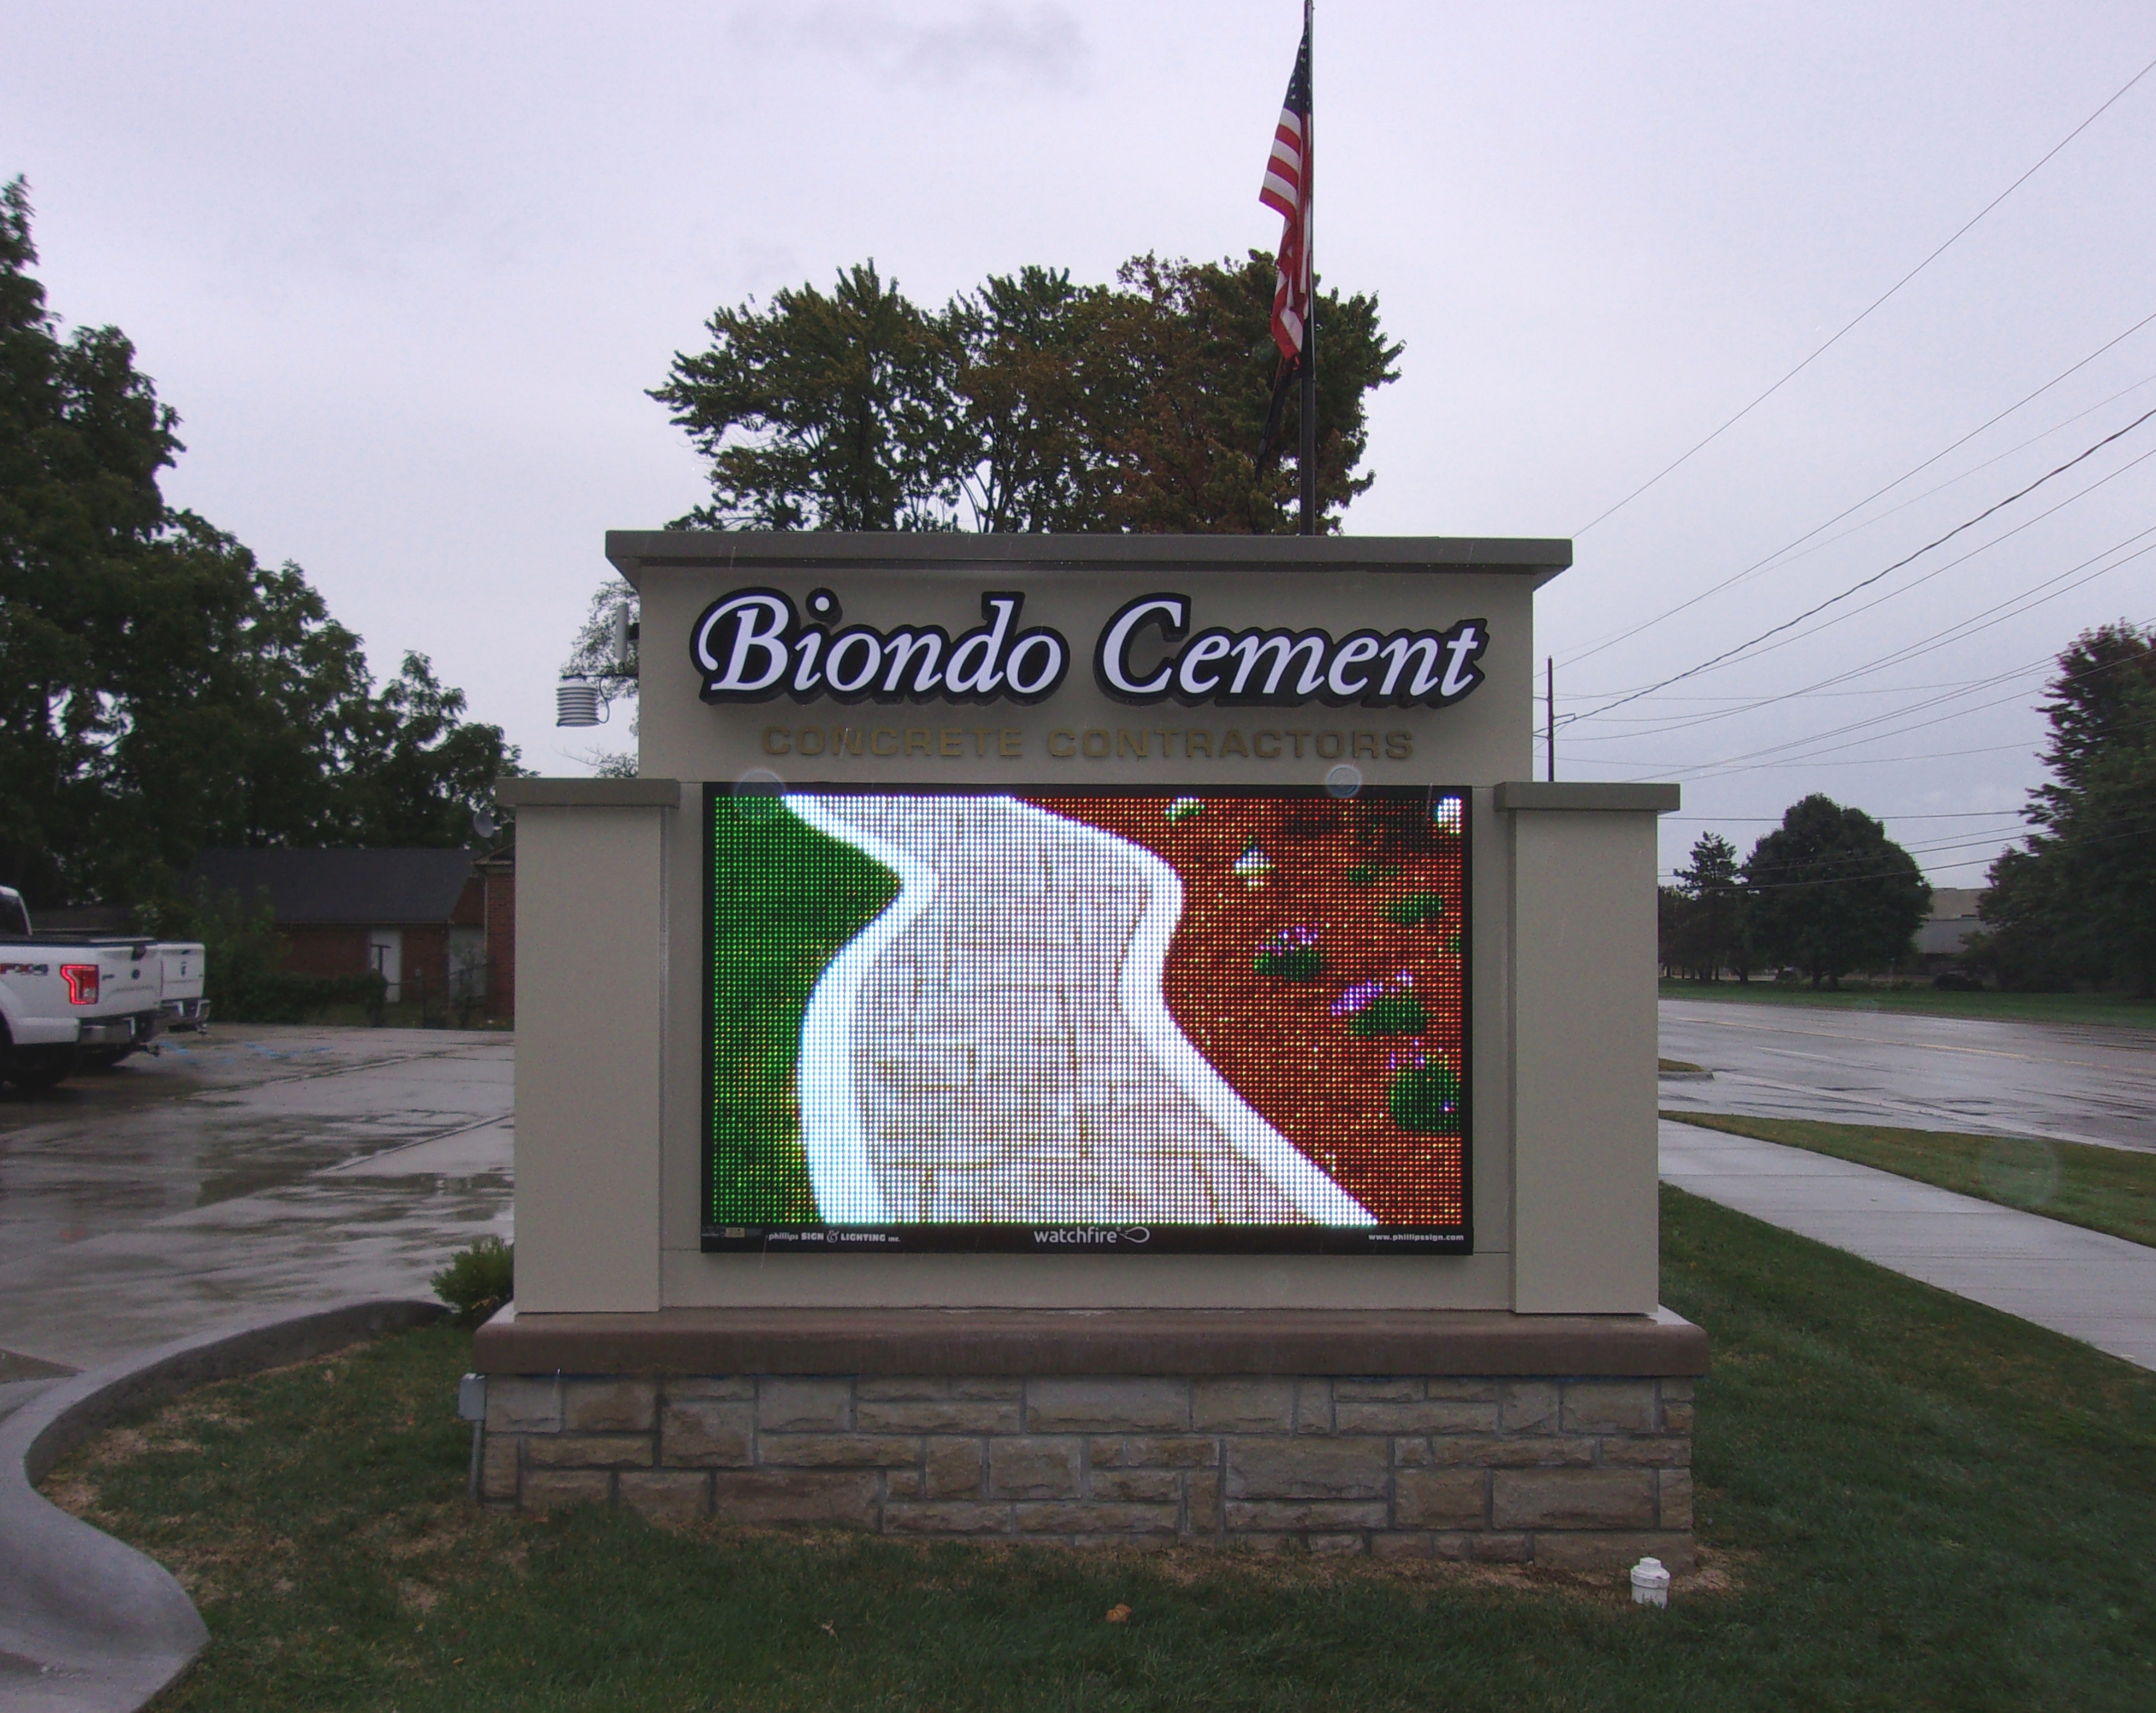 Biondo Cement Shelby Township